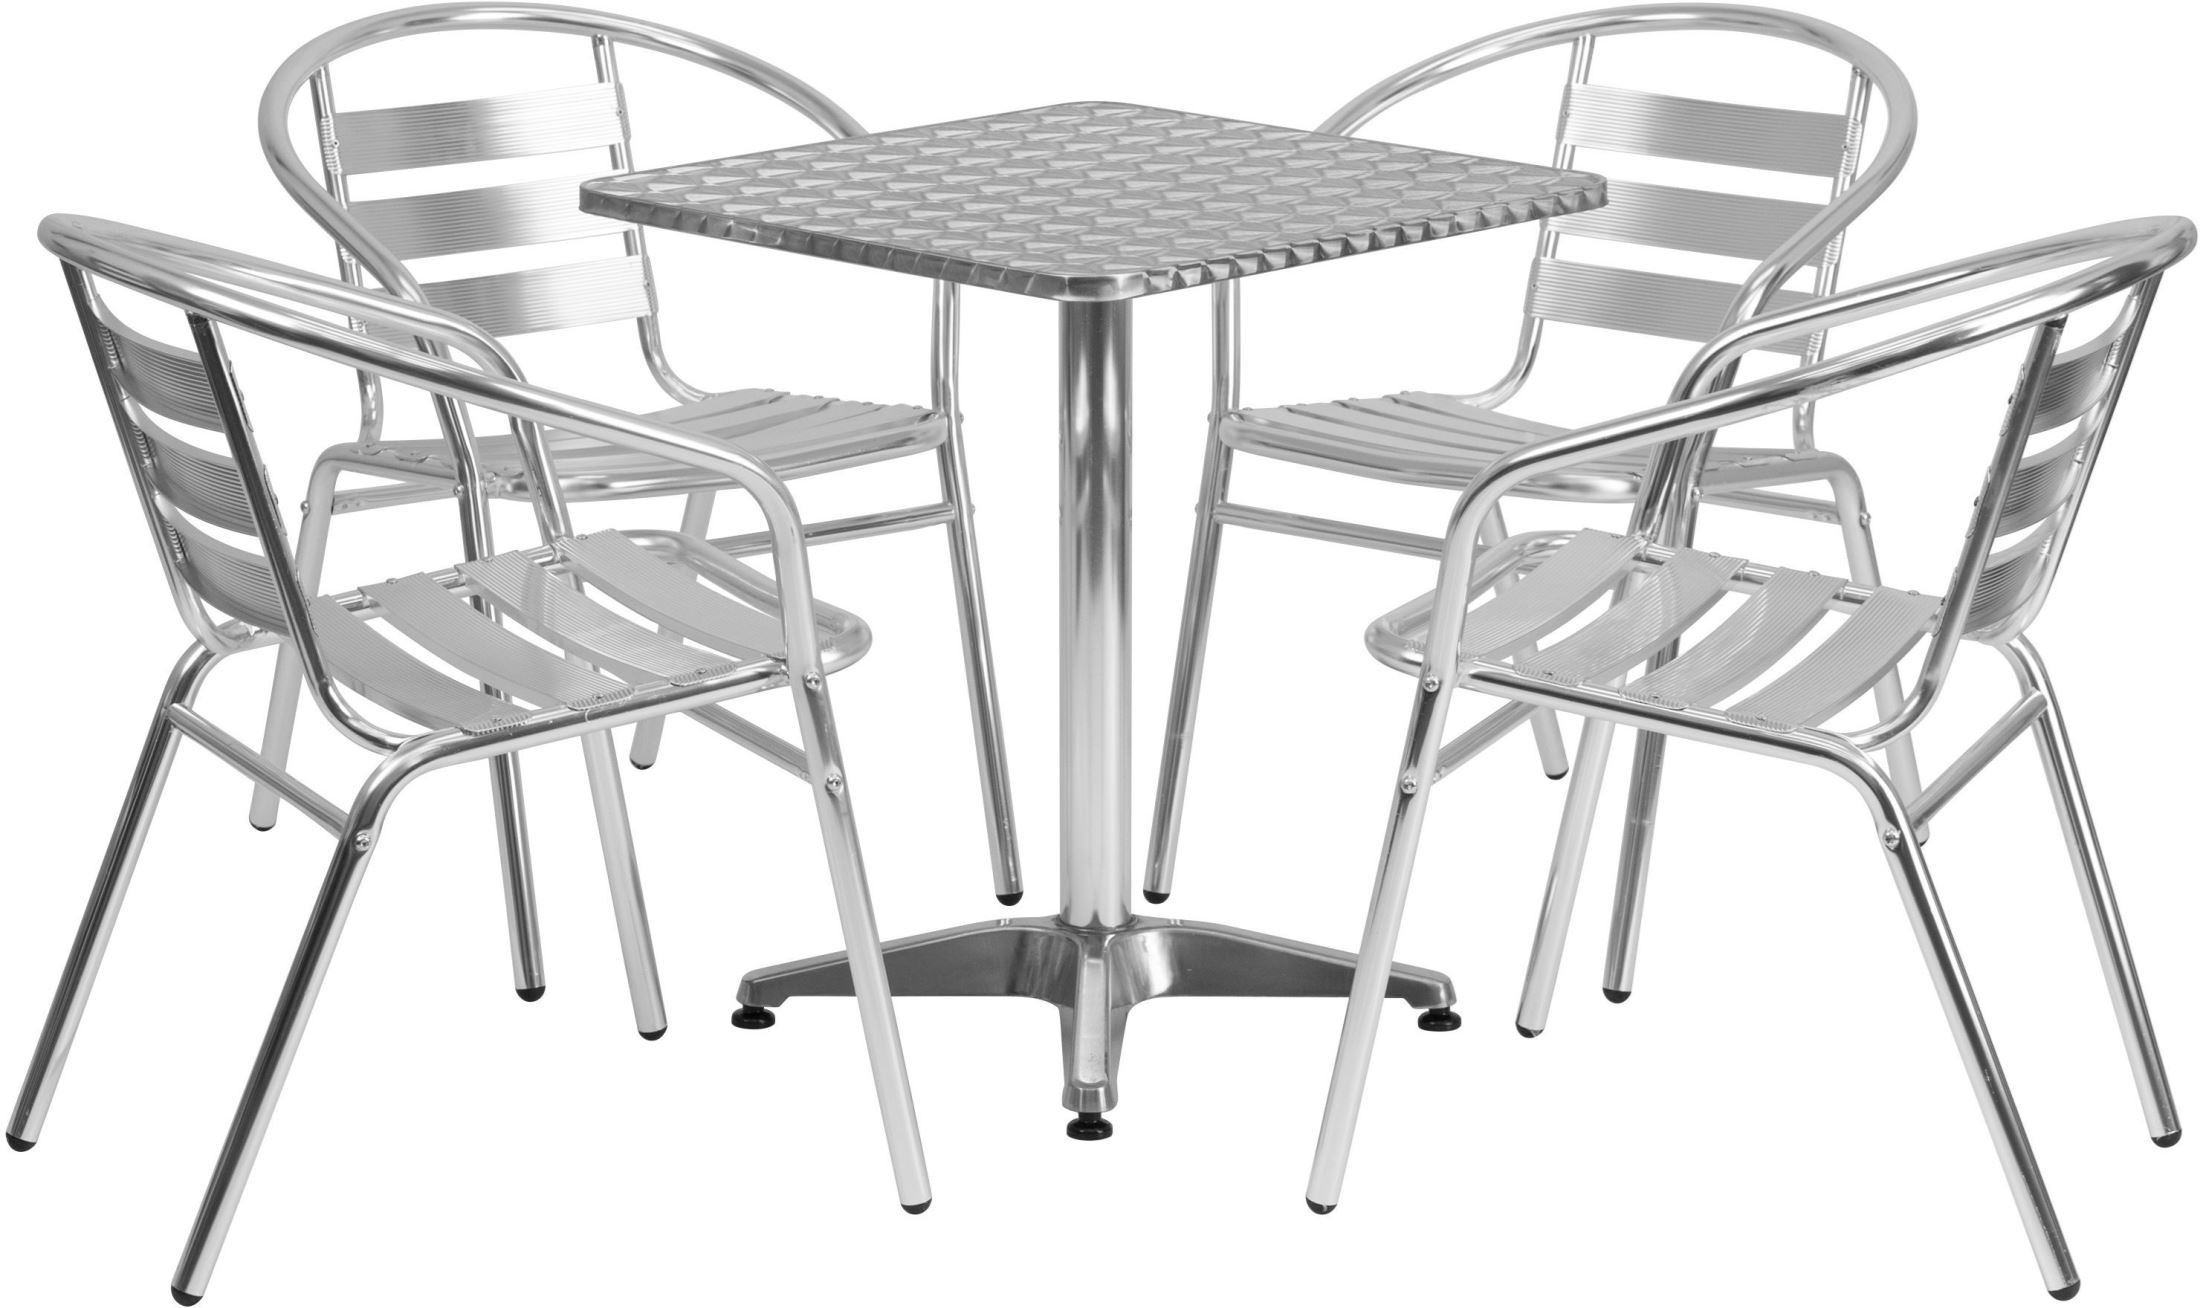 "Square Garden Table And 4 Chairs: 23.5"" Square Aluminum Indoor-Outdoor Table With 4 Slat"